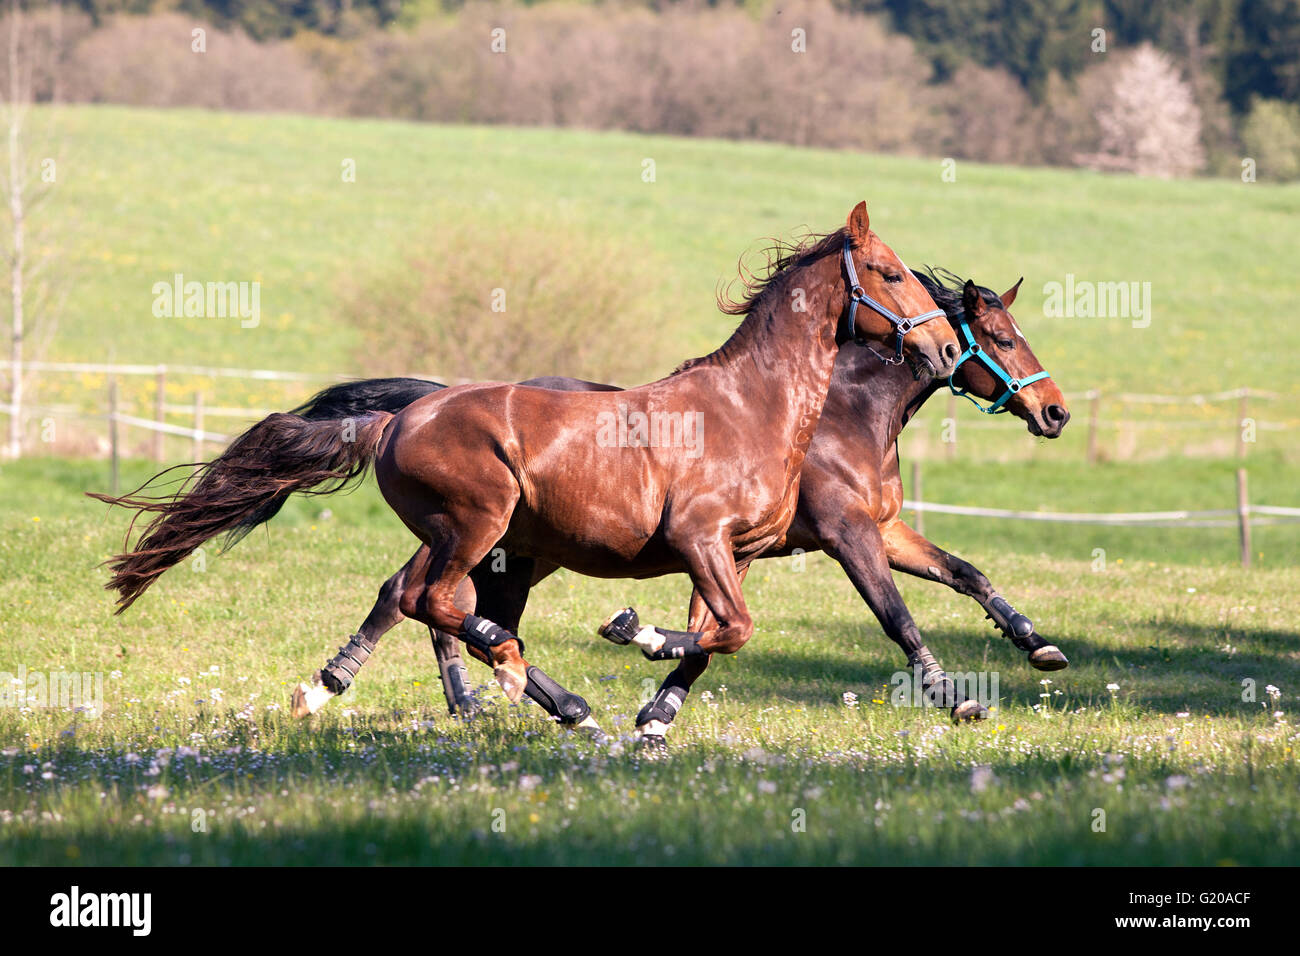 Horses gallop free outside on meadow - Stock Image